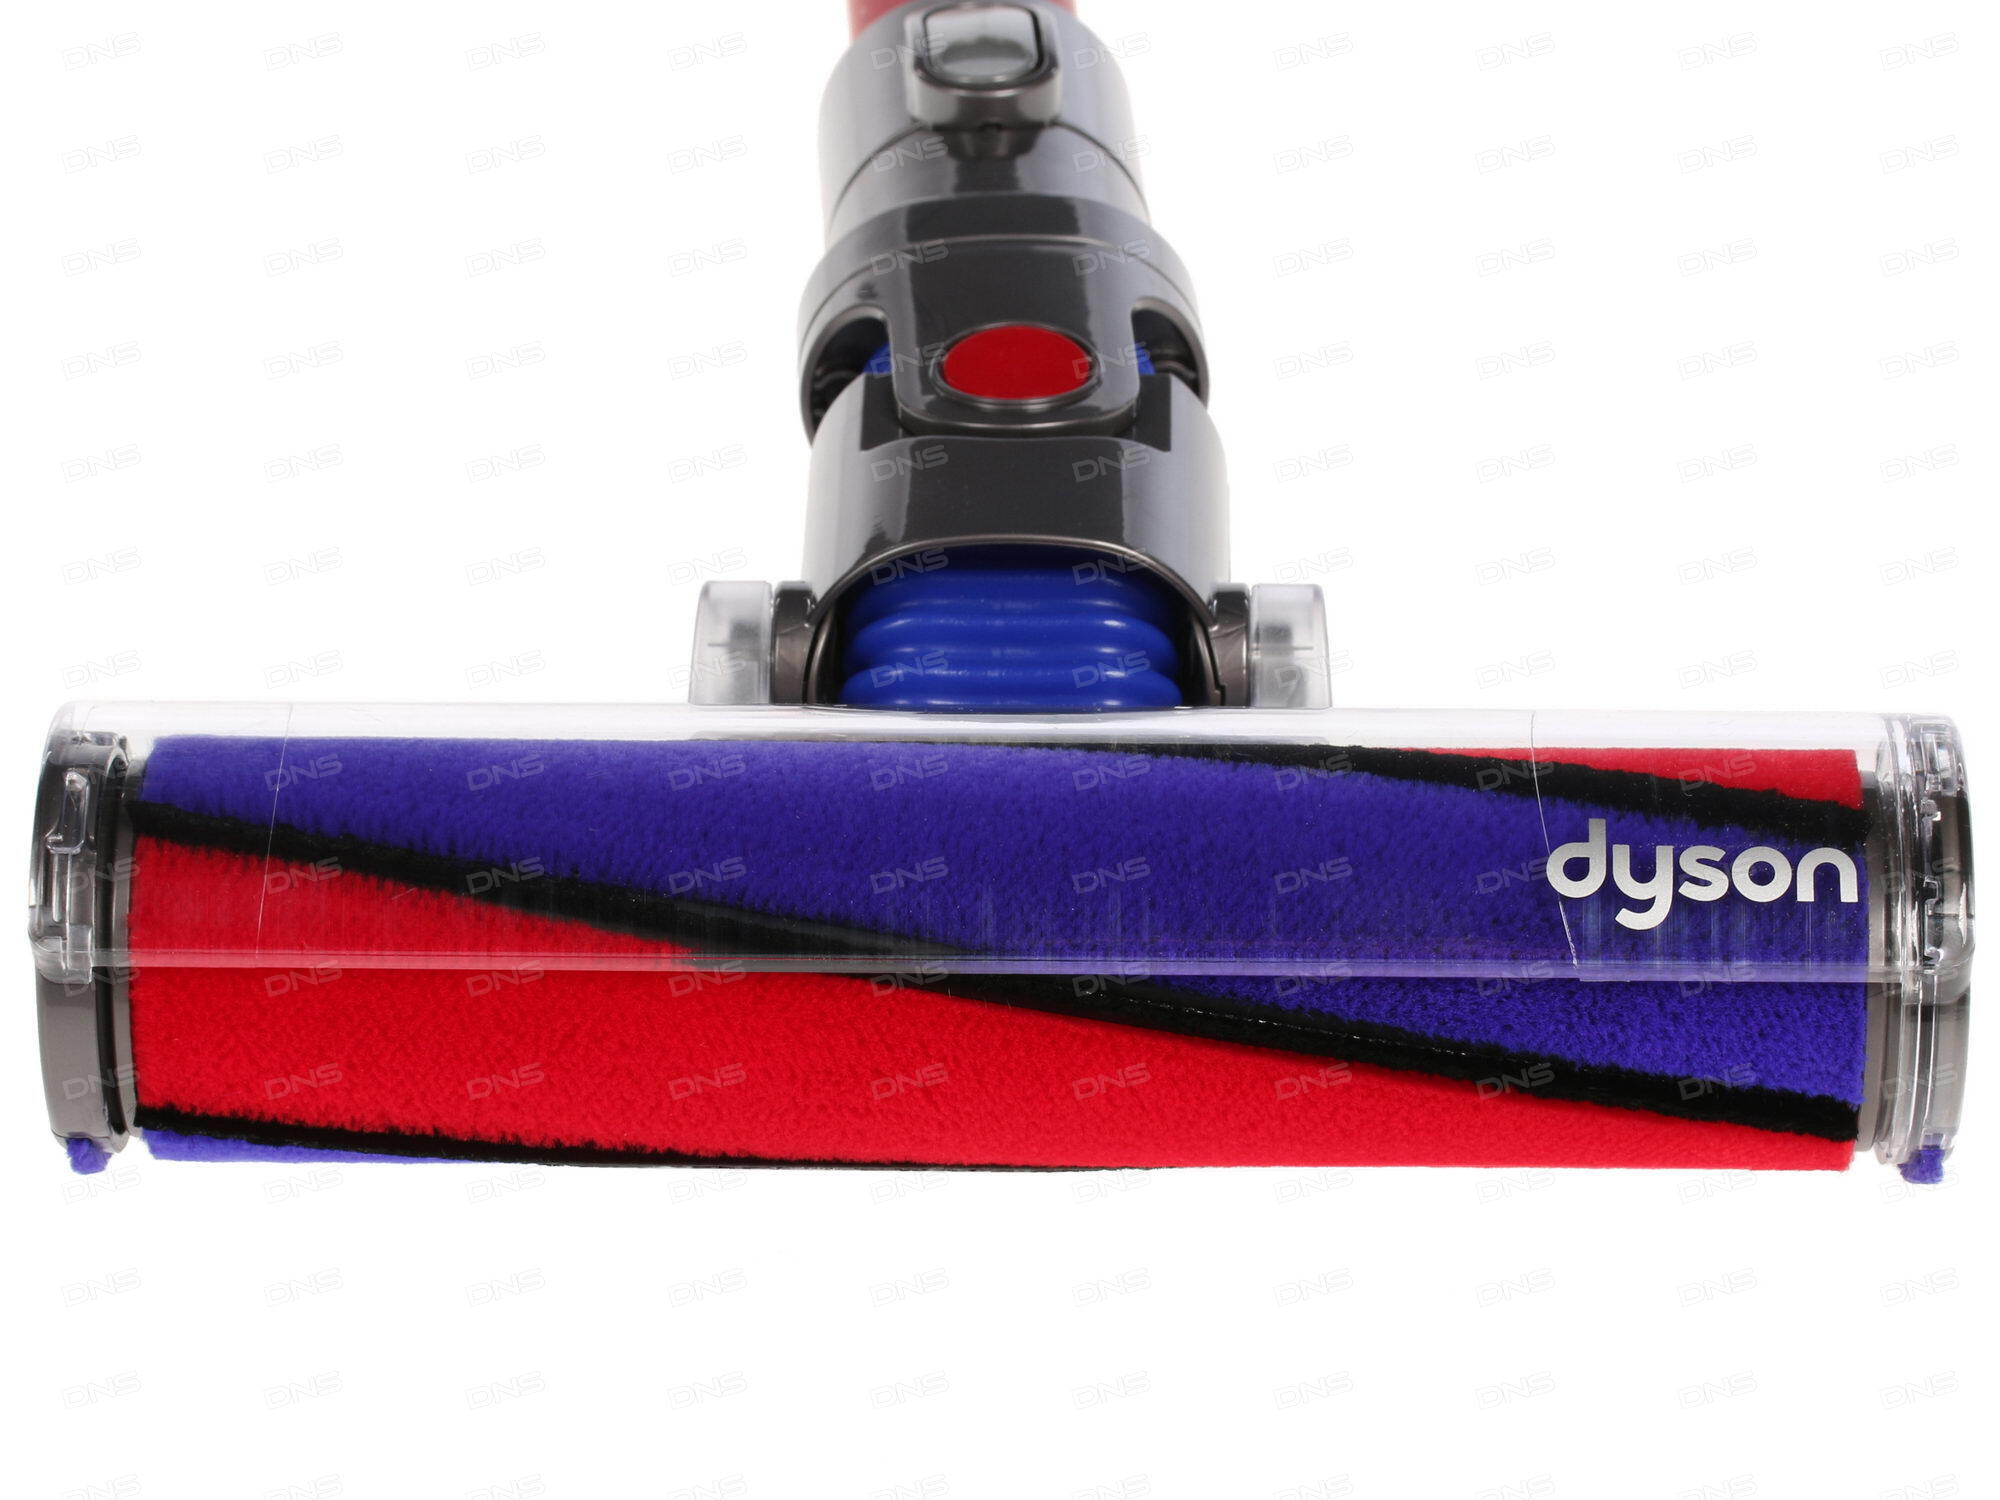 dyson v6 how to clean